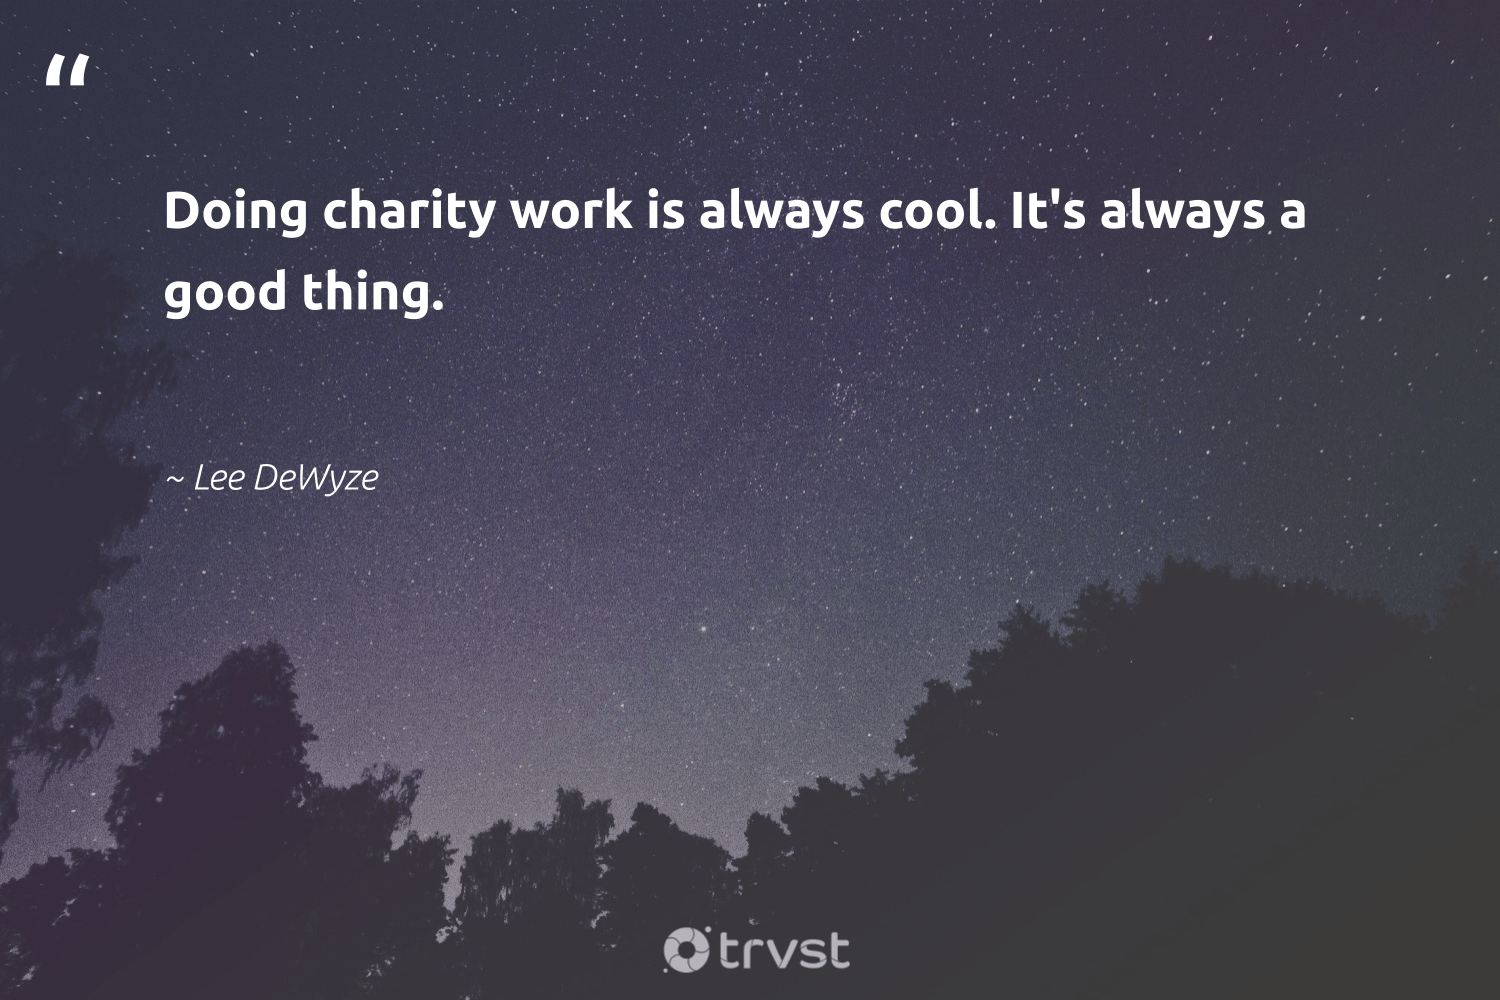 """""""Doing charity work is always cool. It's always a good thing.""""  - Lee DeWyze #trvst #quotes #makeadifference #changetheworld #strongercommunities #dogood #socialchange #gogreen #bethechange #collectiveaction #betterplanet #ecoconscious"""